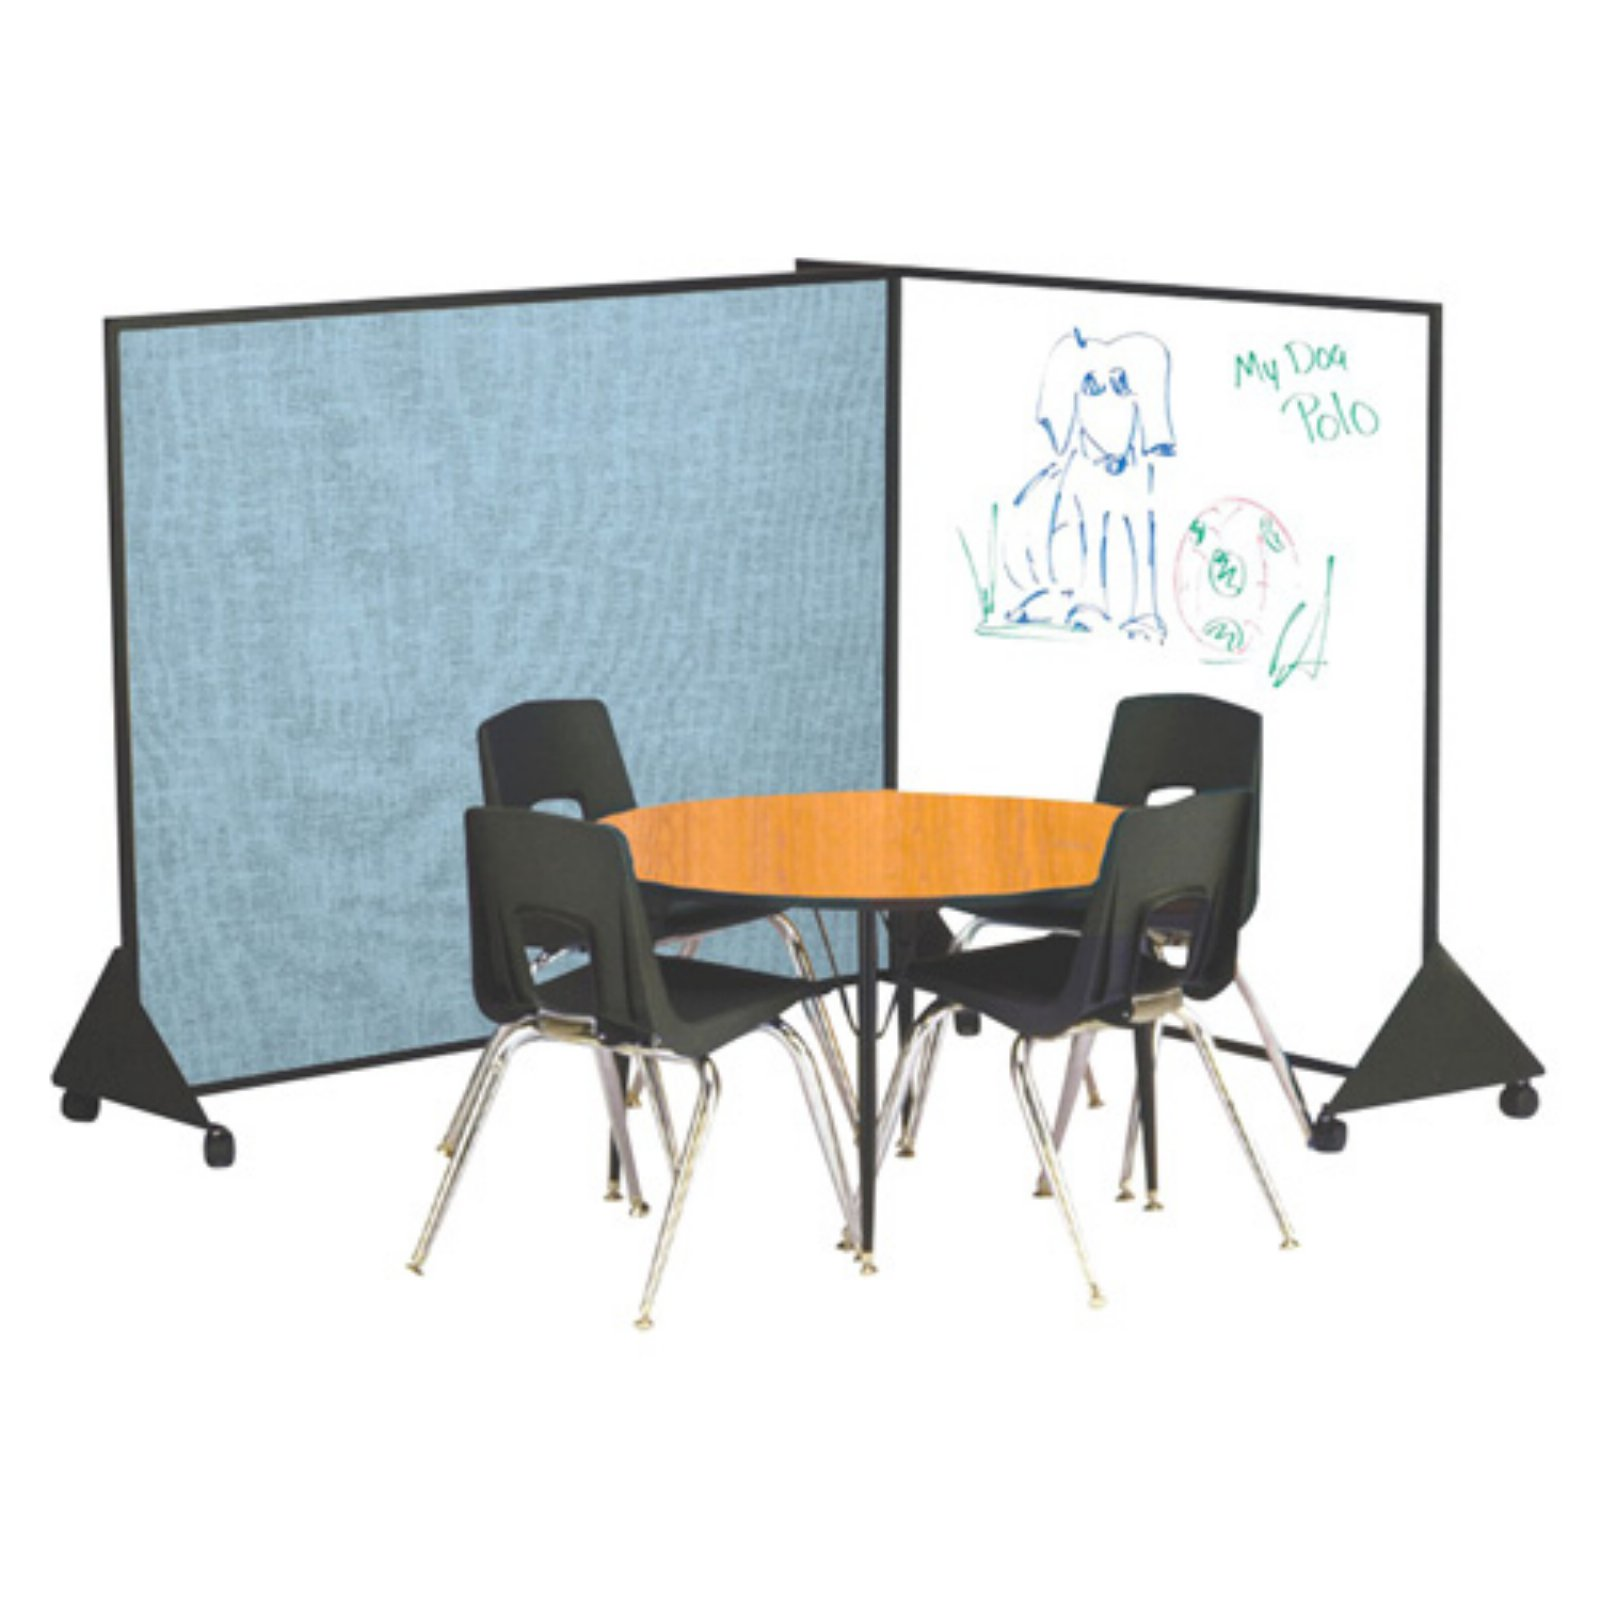 Best Rite Pre-School Markerboard/Vinyl Double Sided Room Divider - 5W x 4H ft.